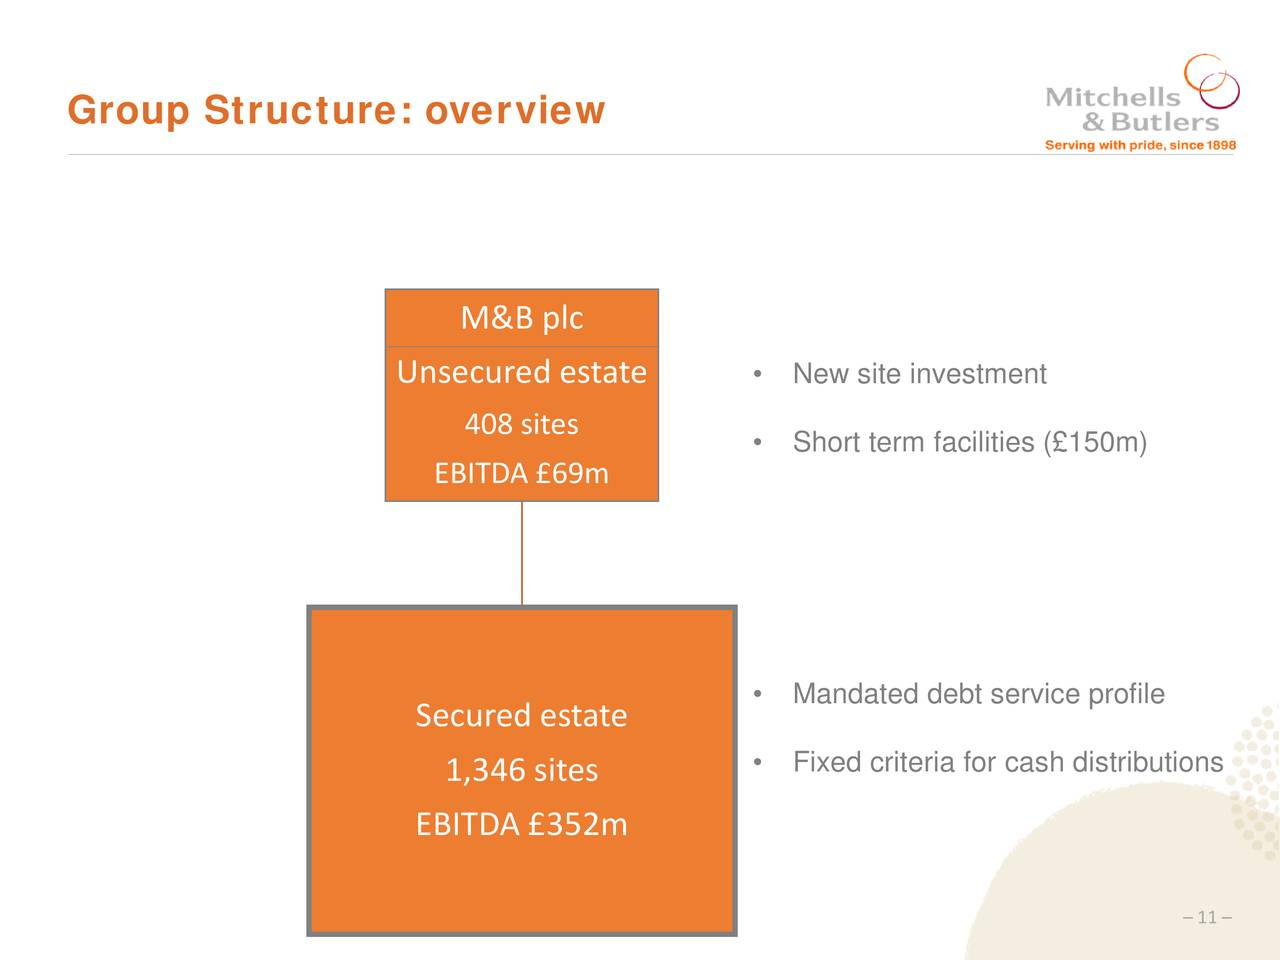 financial analysis of mitchells butlers The income statement (earnings report) for mitchells & butlers plc find the company's financial performance, revenue, and more.